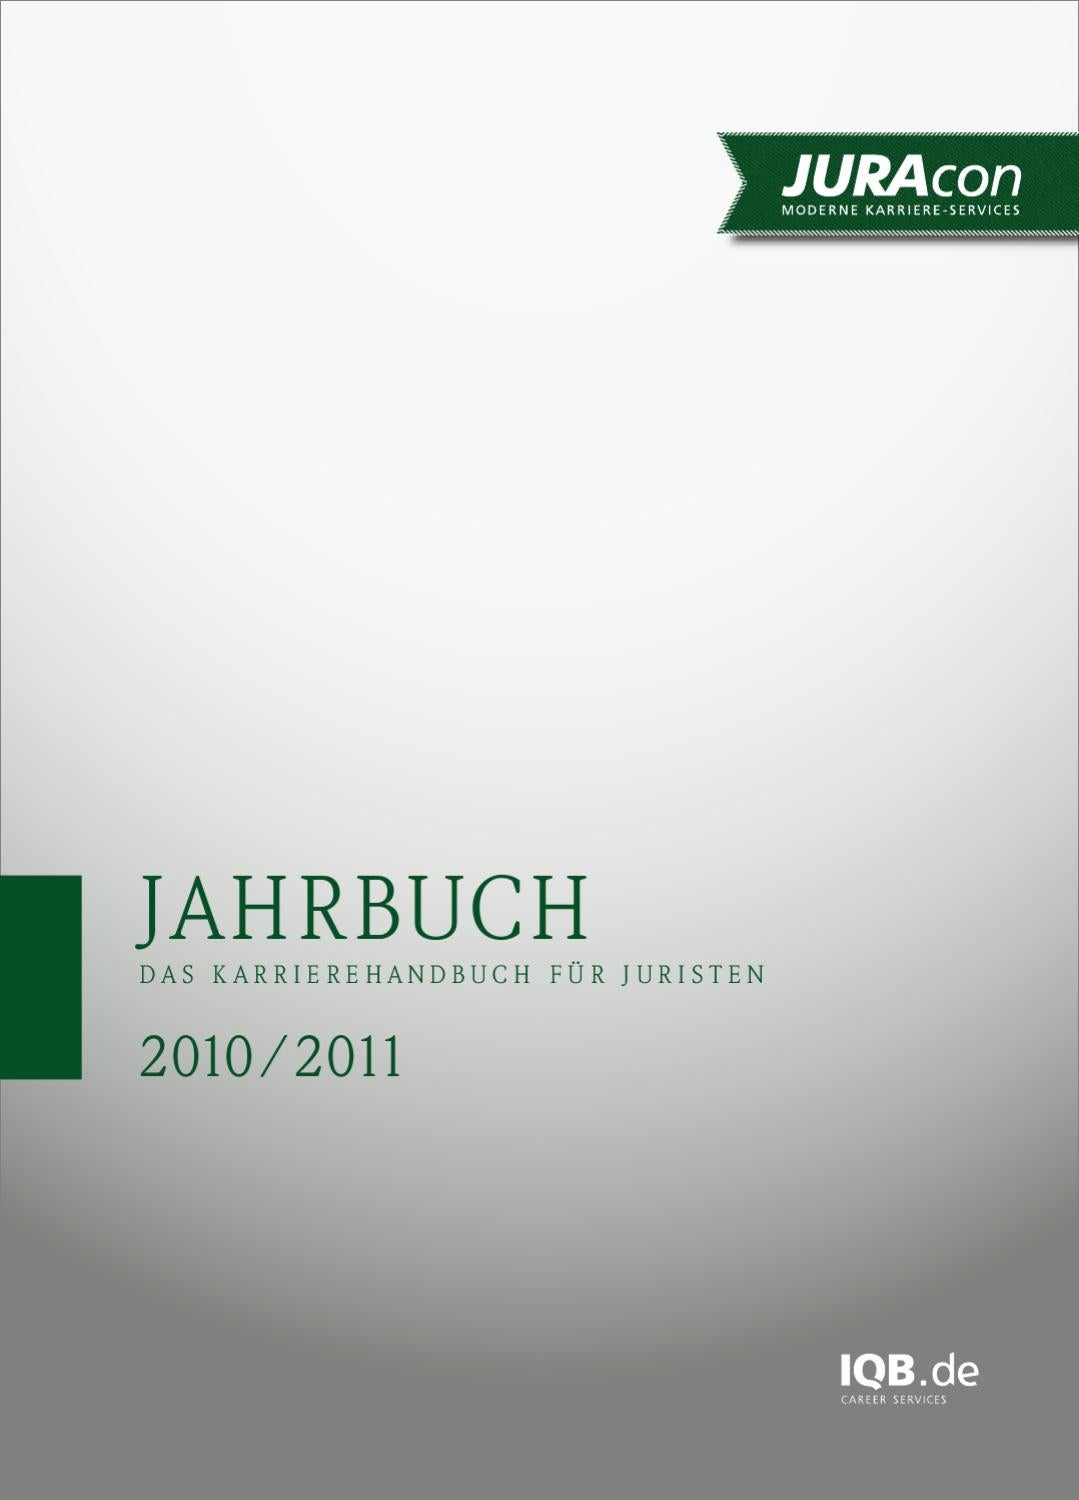 JURAcon Jahrbuch 2010/2011 by IQB Career Services AG - issuu